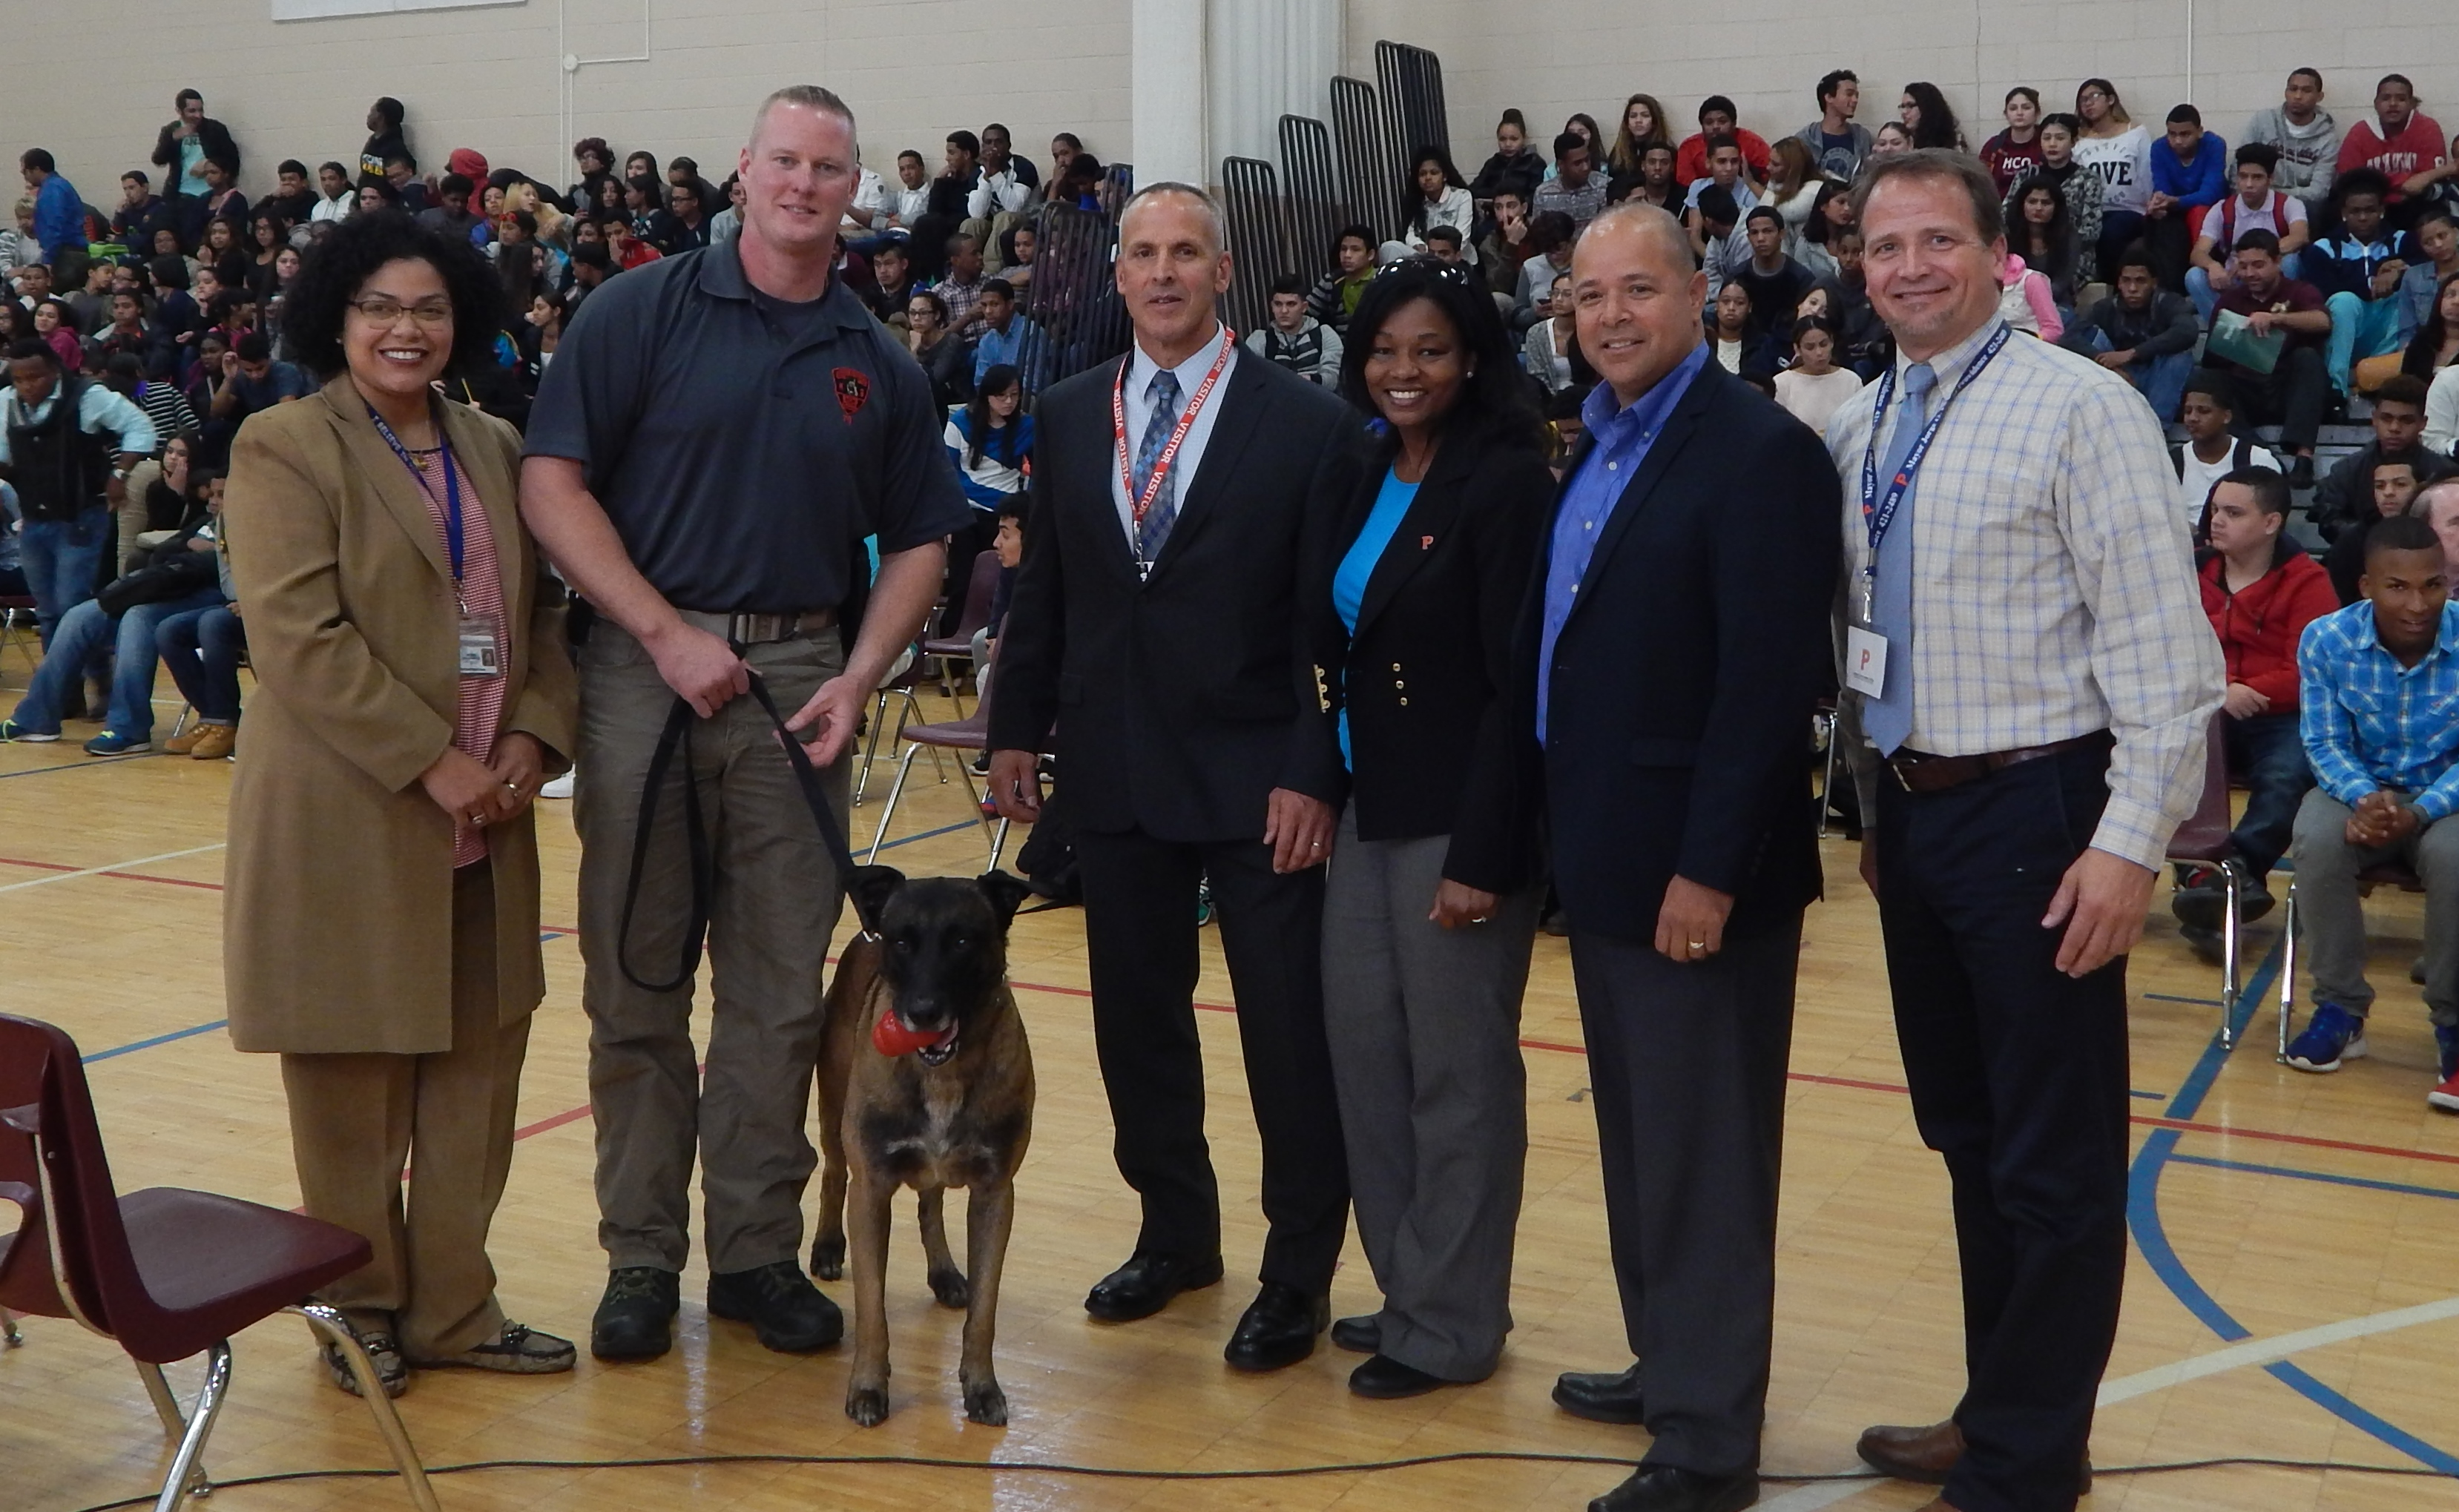 R.I. State Police Detective Sean McGehearty and his K9 Bane demonstrated for students and administrators at the Dr. Jorge Alvarez High School in Providence the training and technique to alert investigators to the presence of drugs